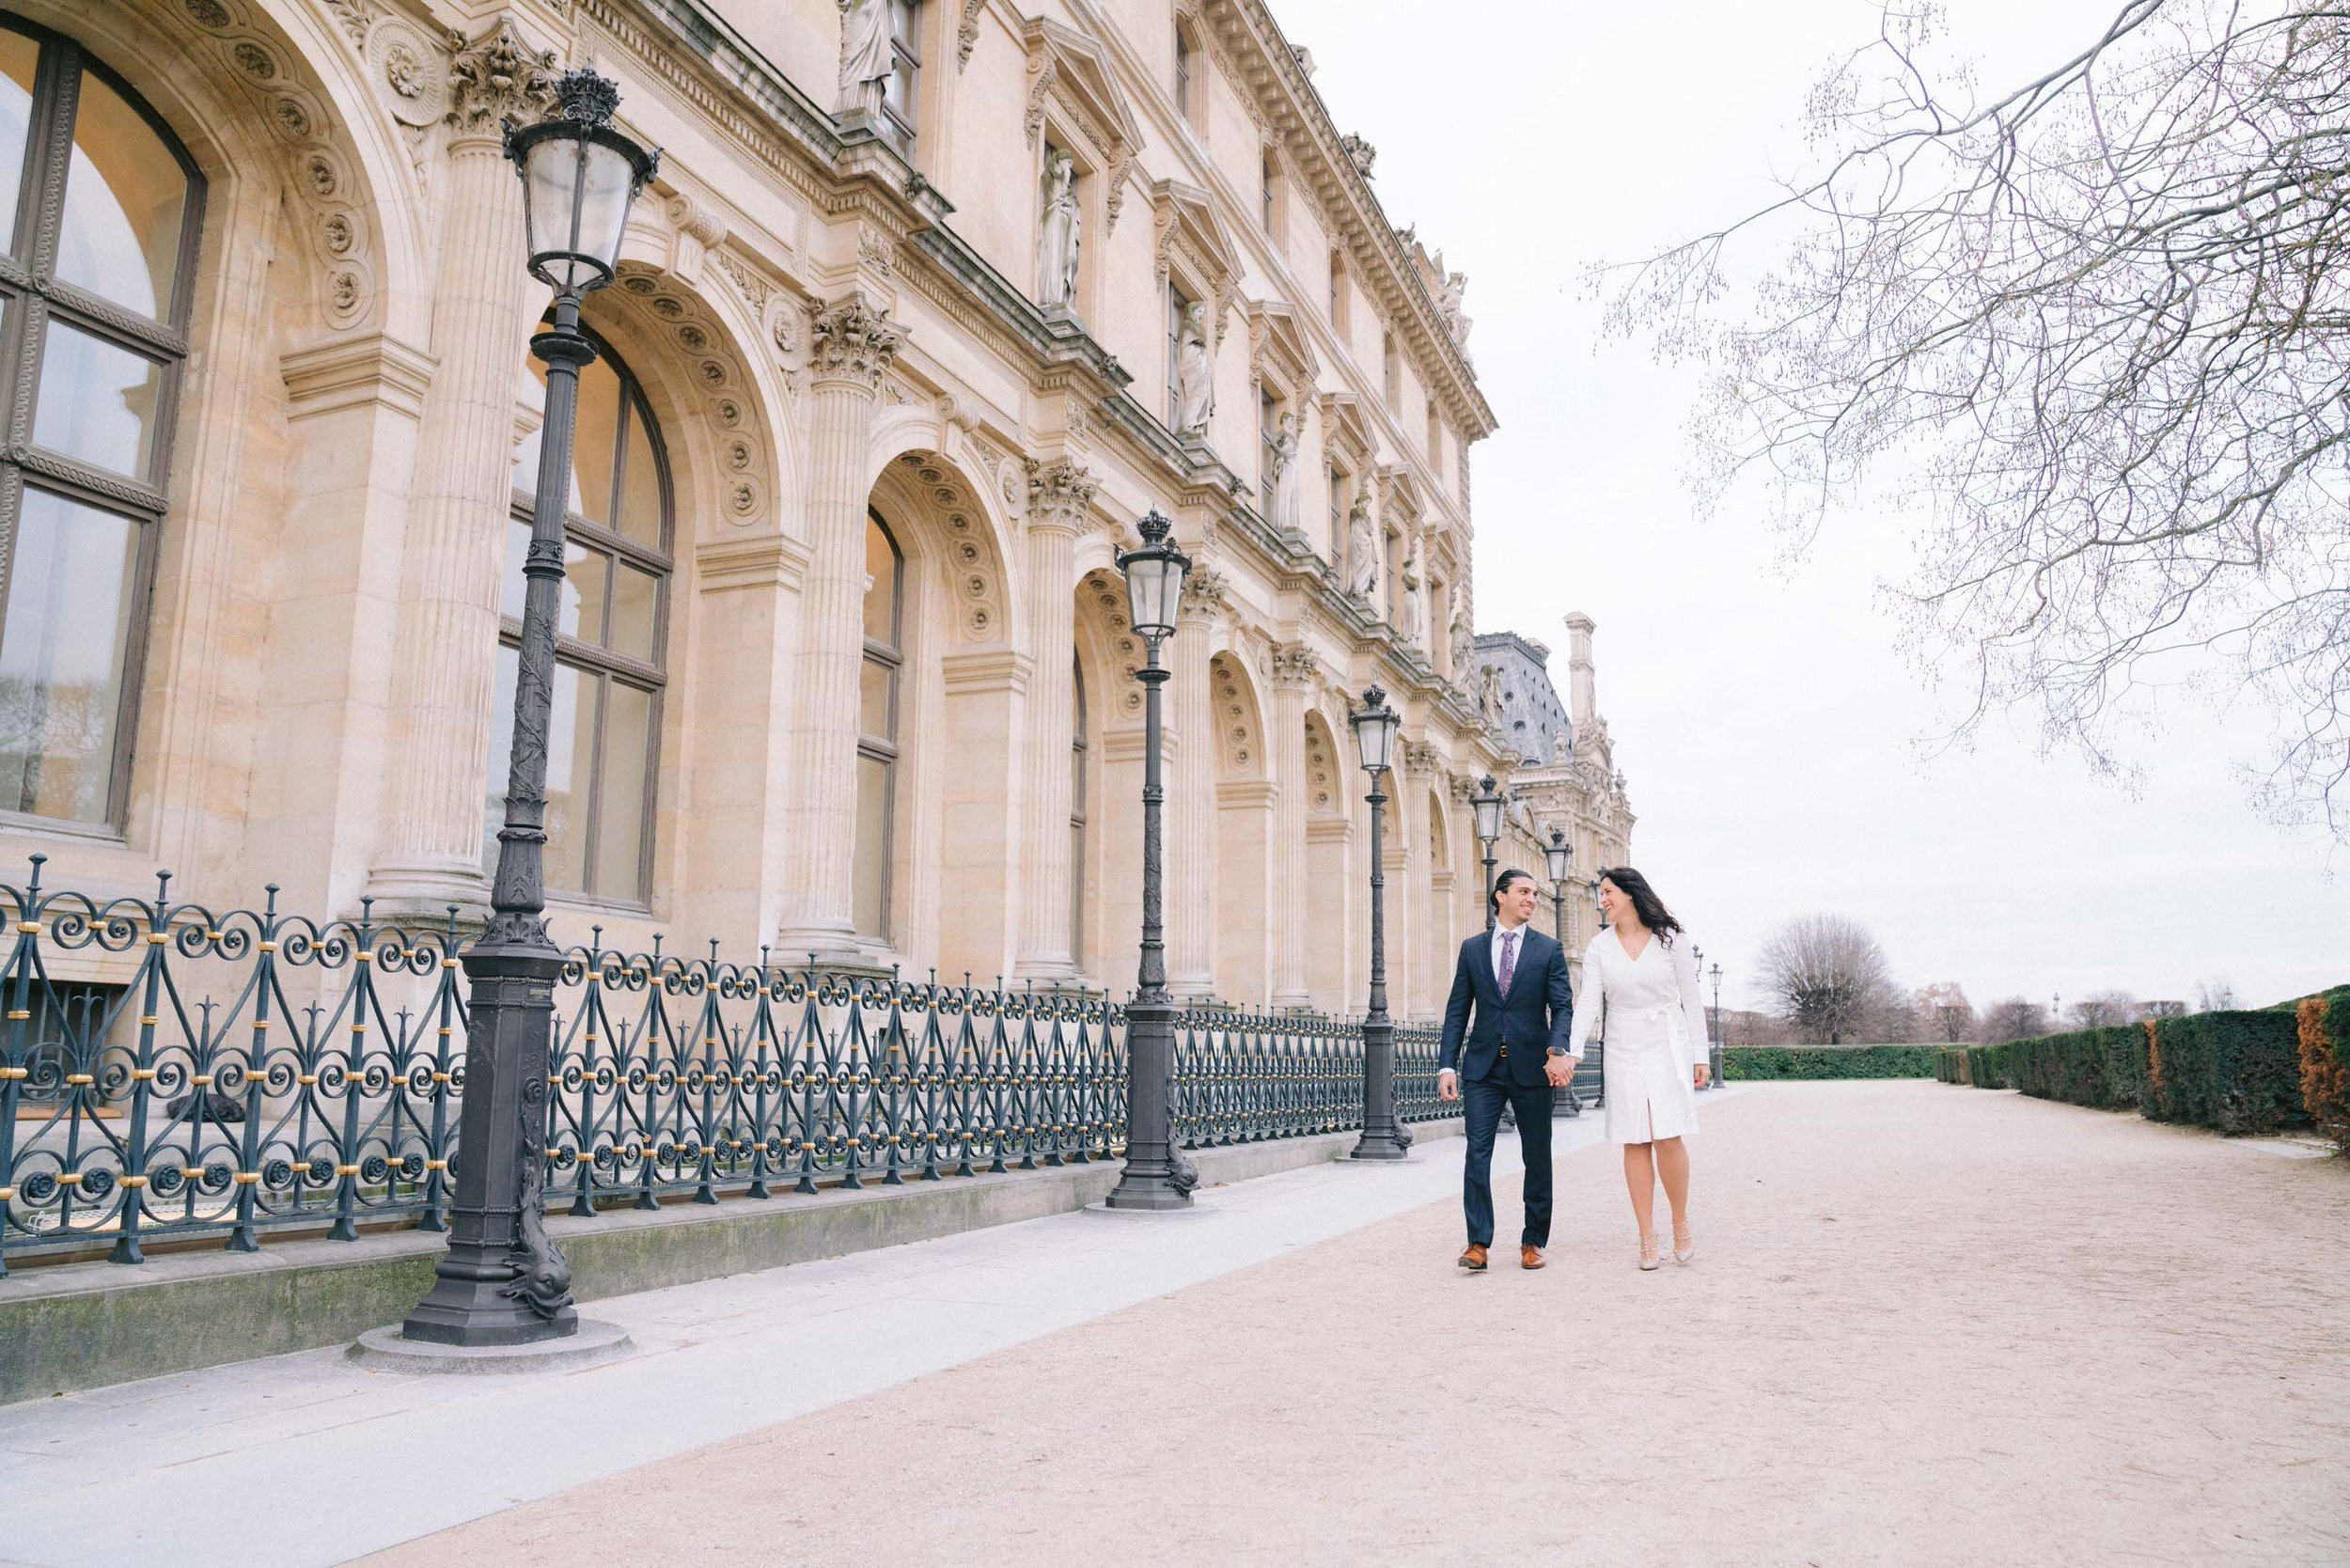 Gorgeous engagement session at the Louvre in Paris